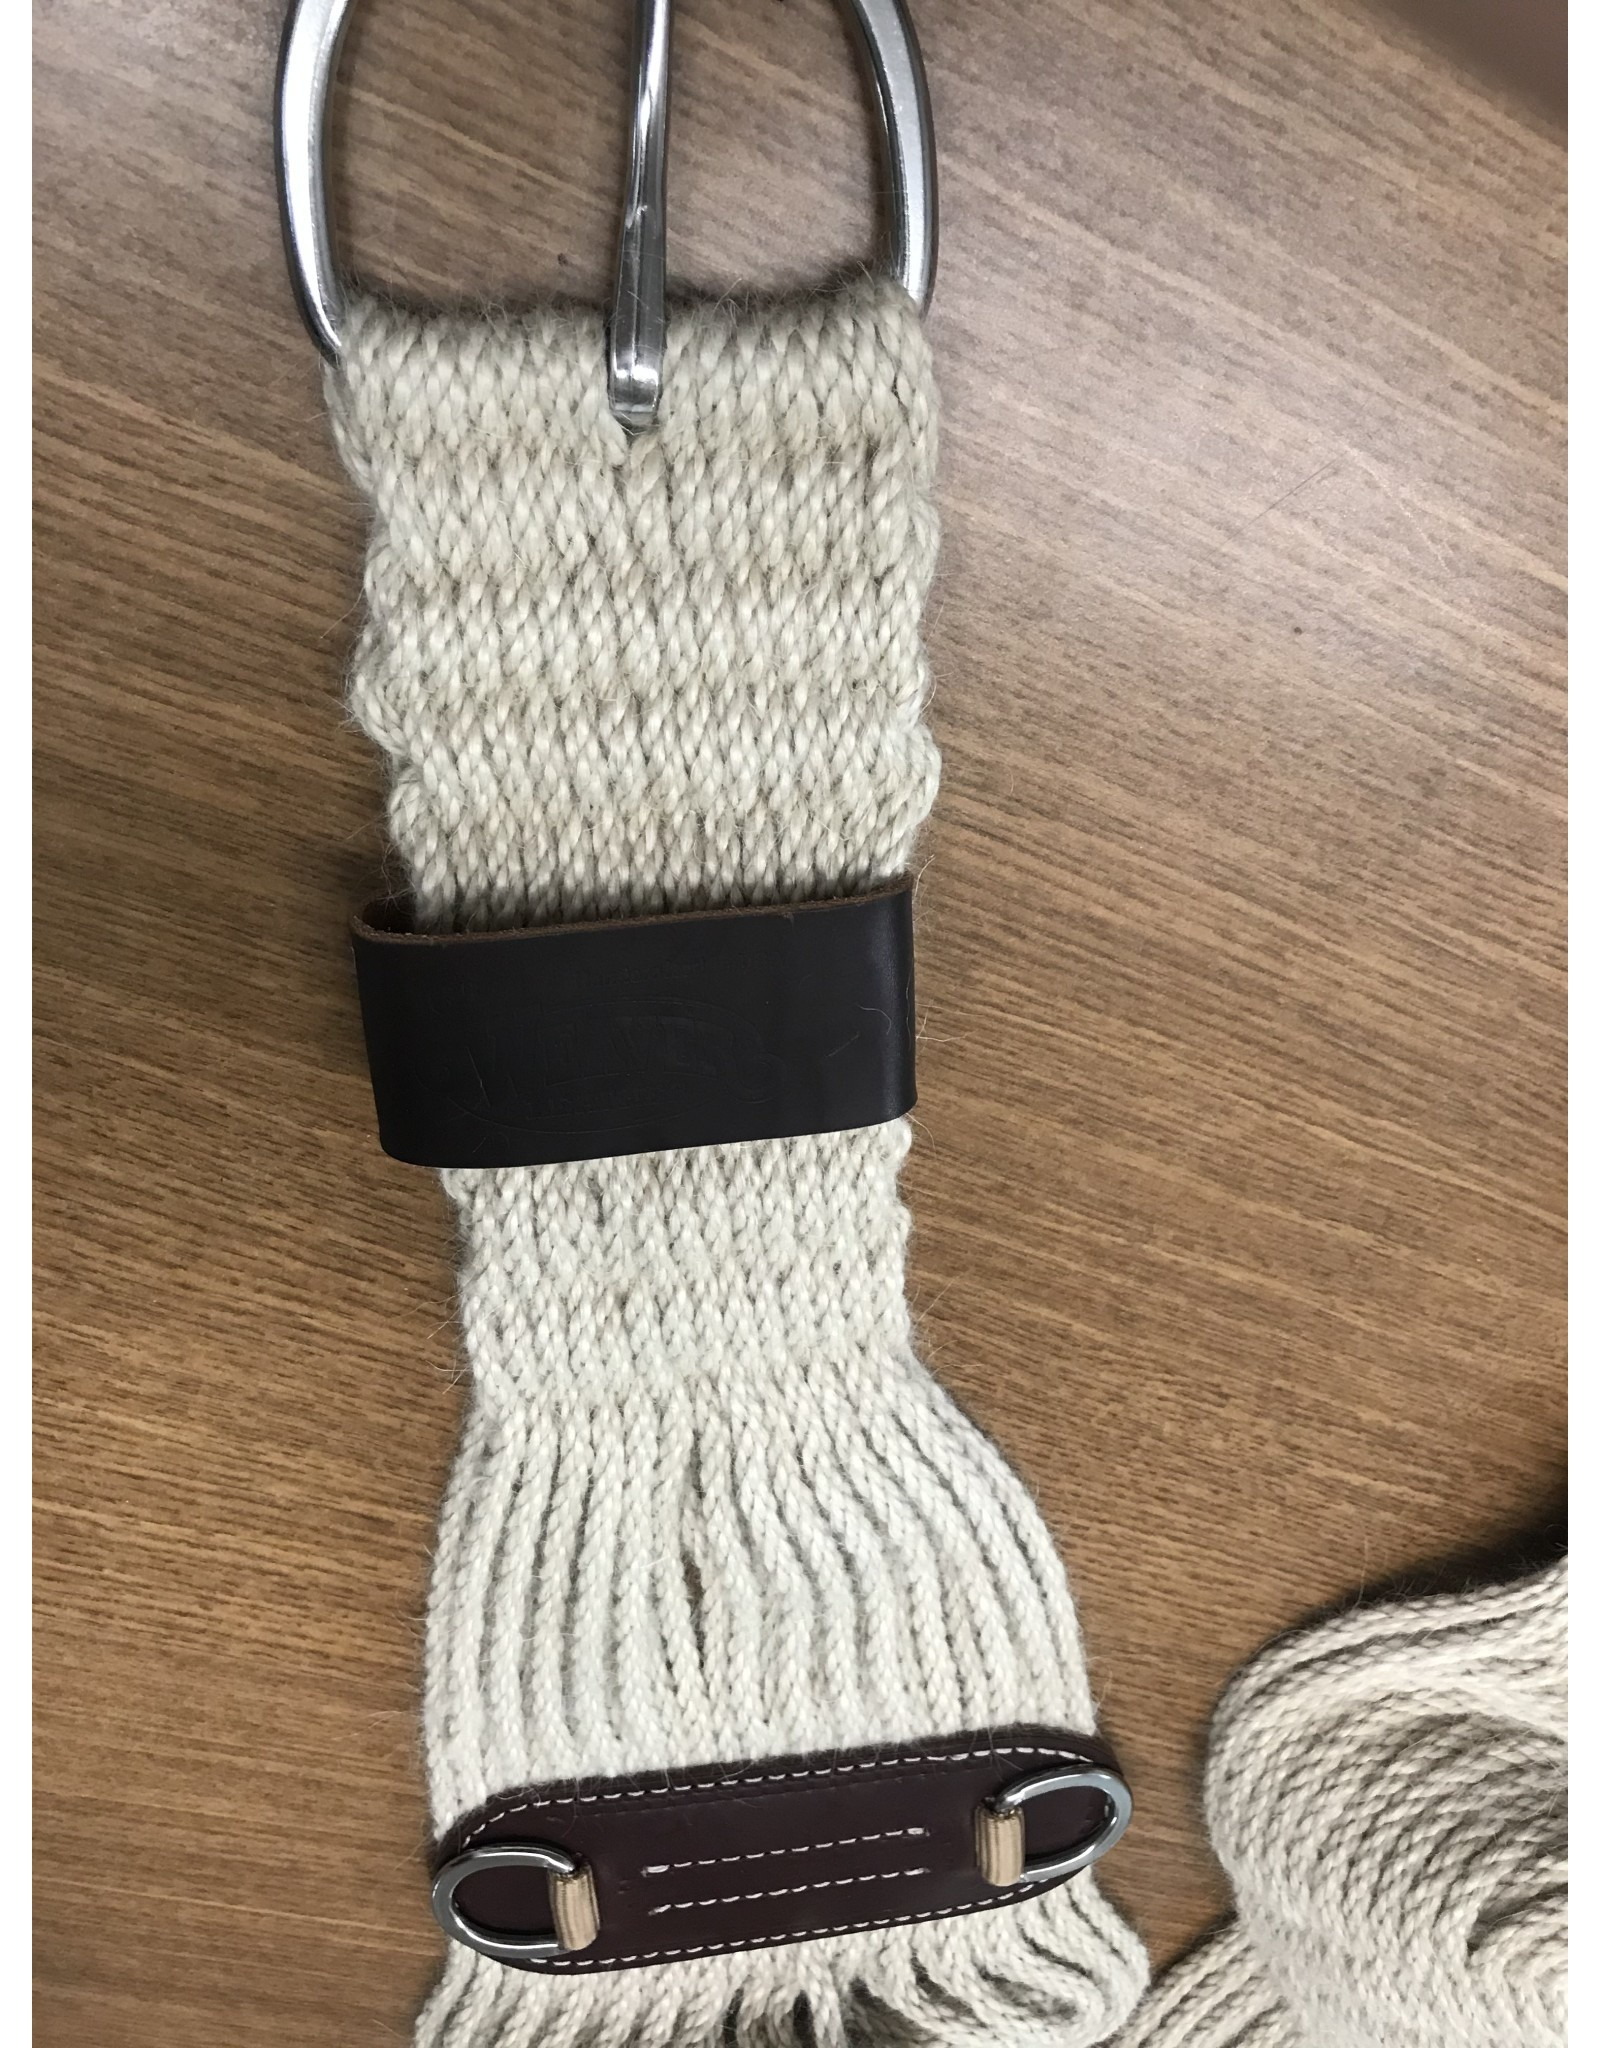 CIN* 100%  Mohair Roper Cinch - 32'' #35-2431-32 (mid cinch with leather under and one leather cinch holder basic hardware)